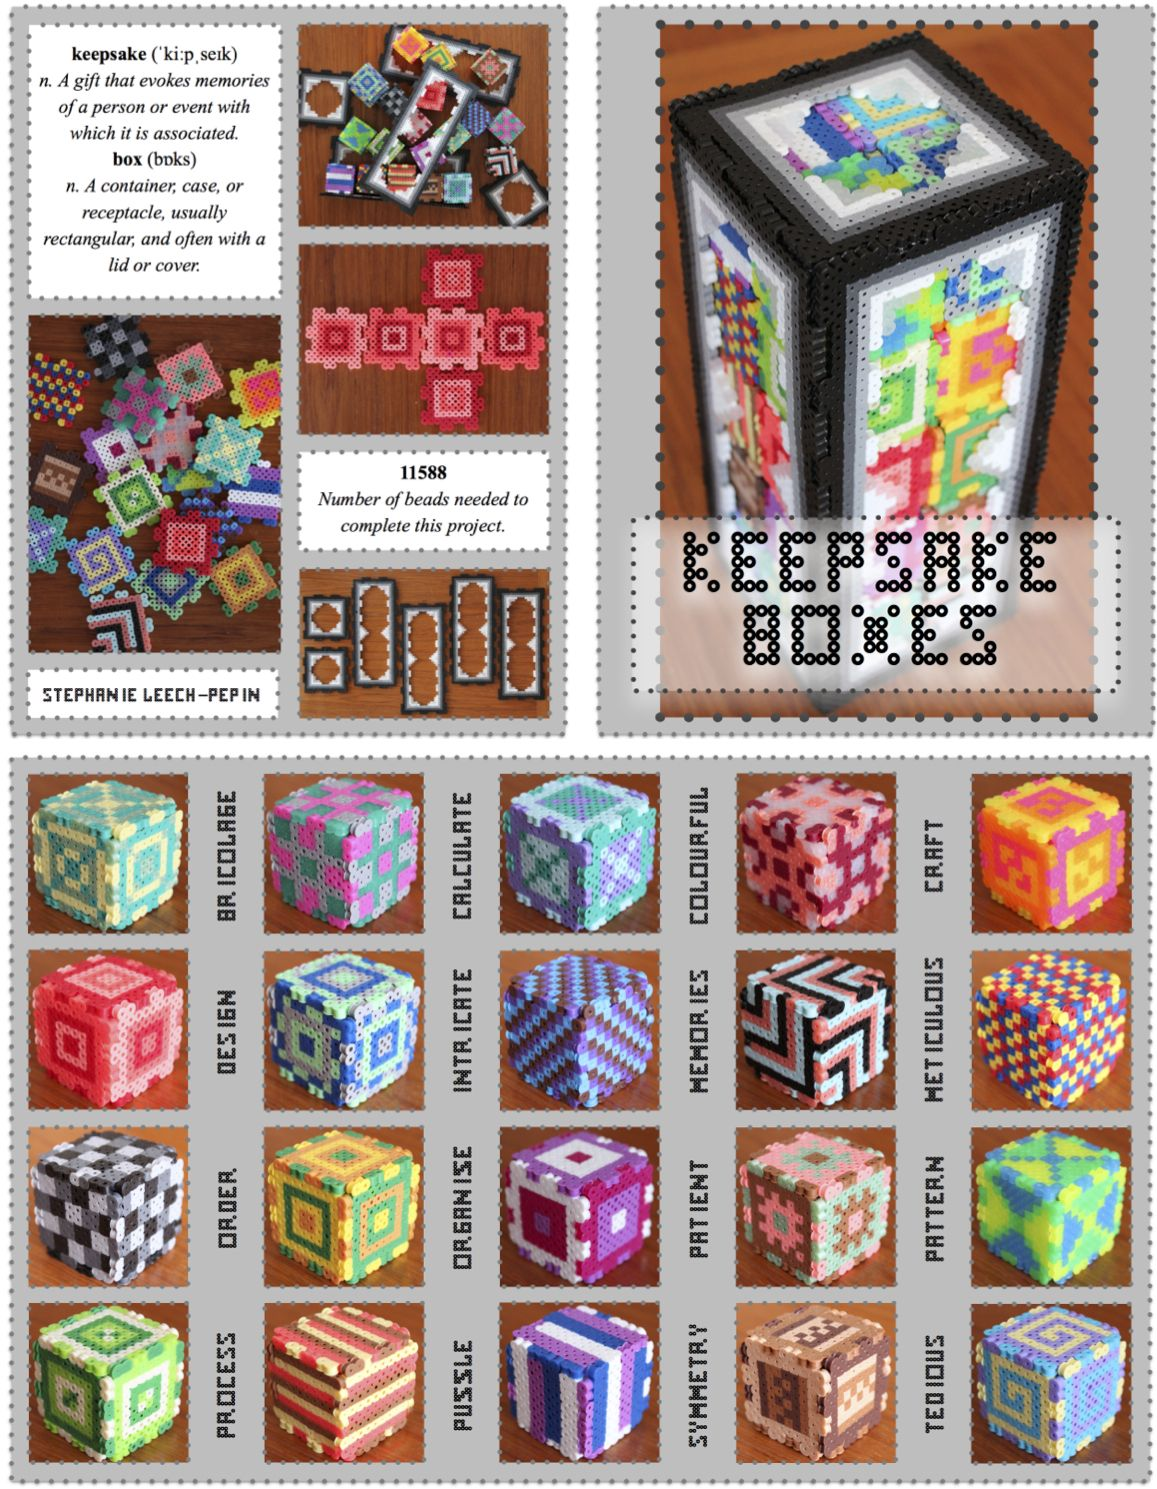 medium resolution of perler bead keepsake boxes so much fun by steph leech pepin